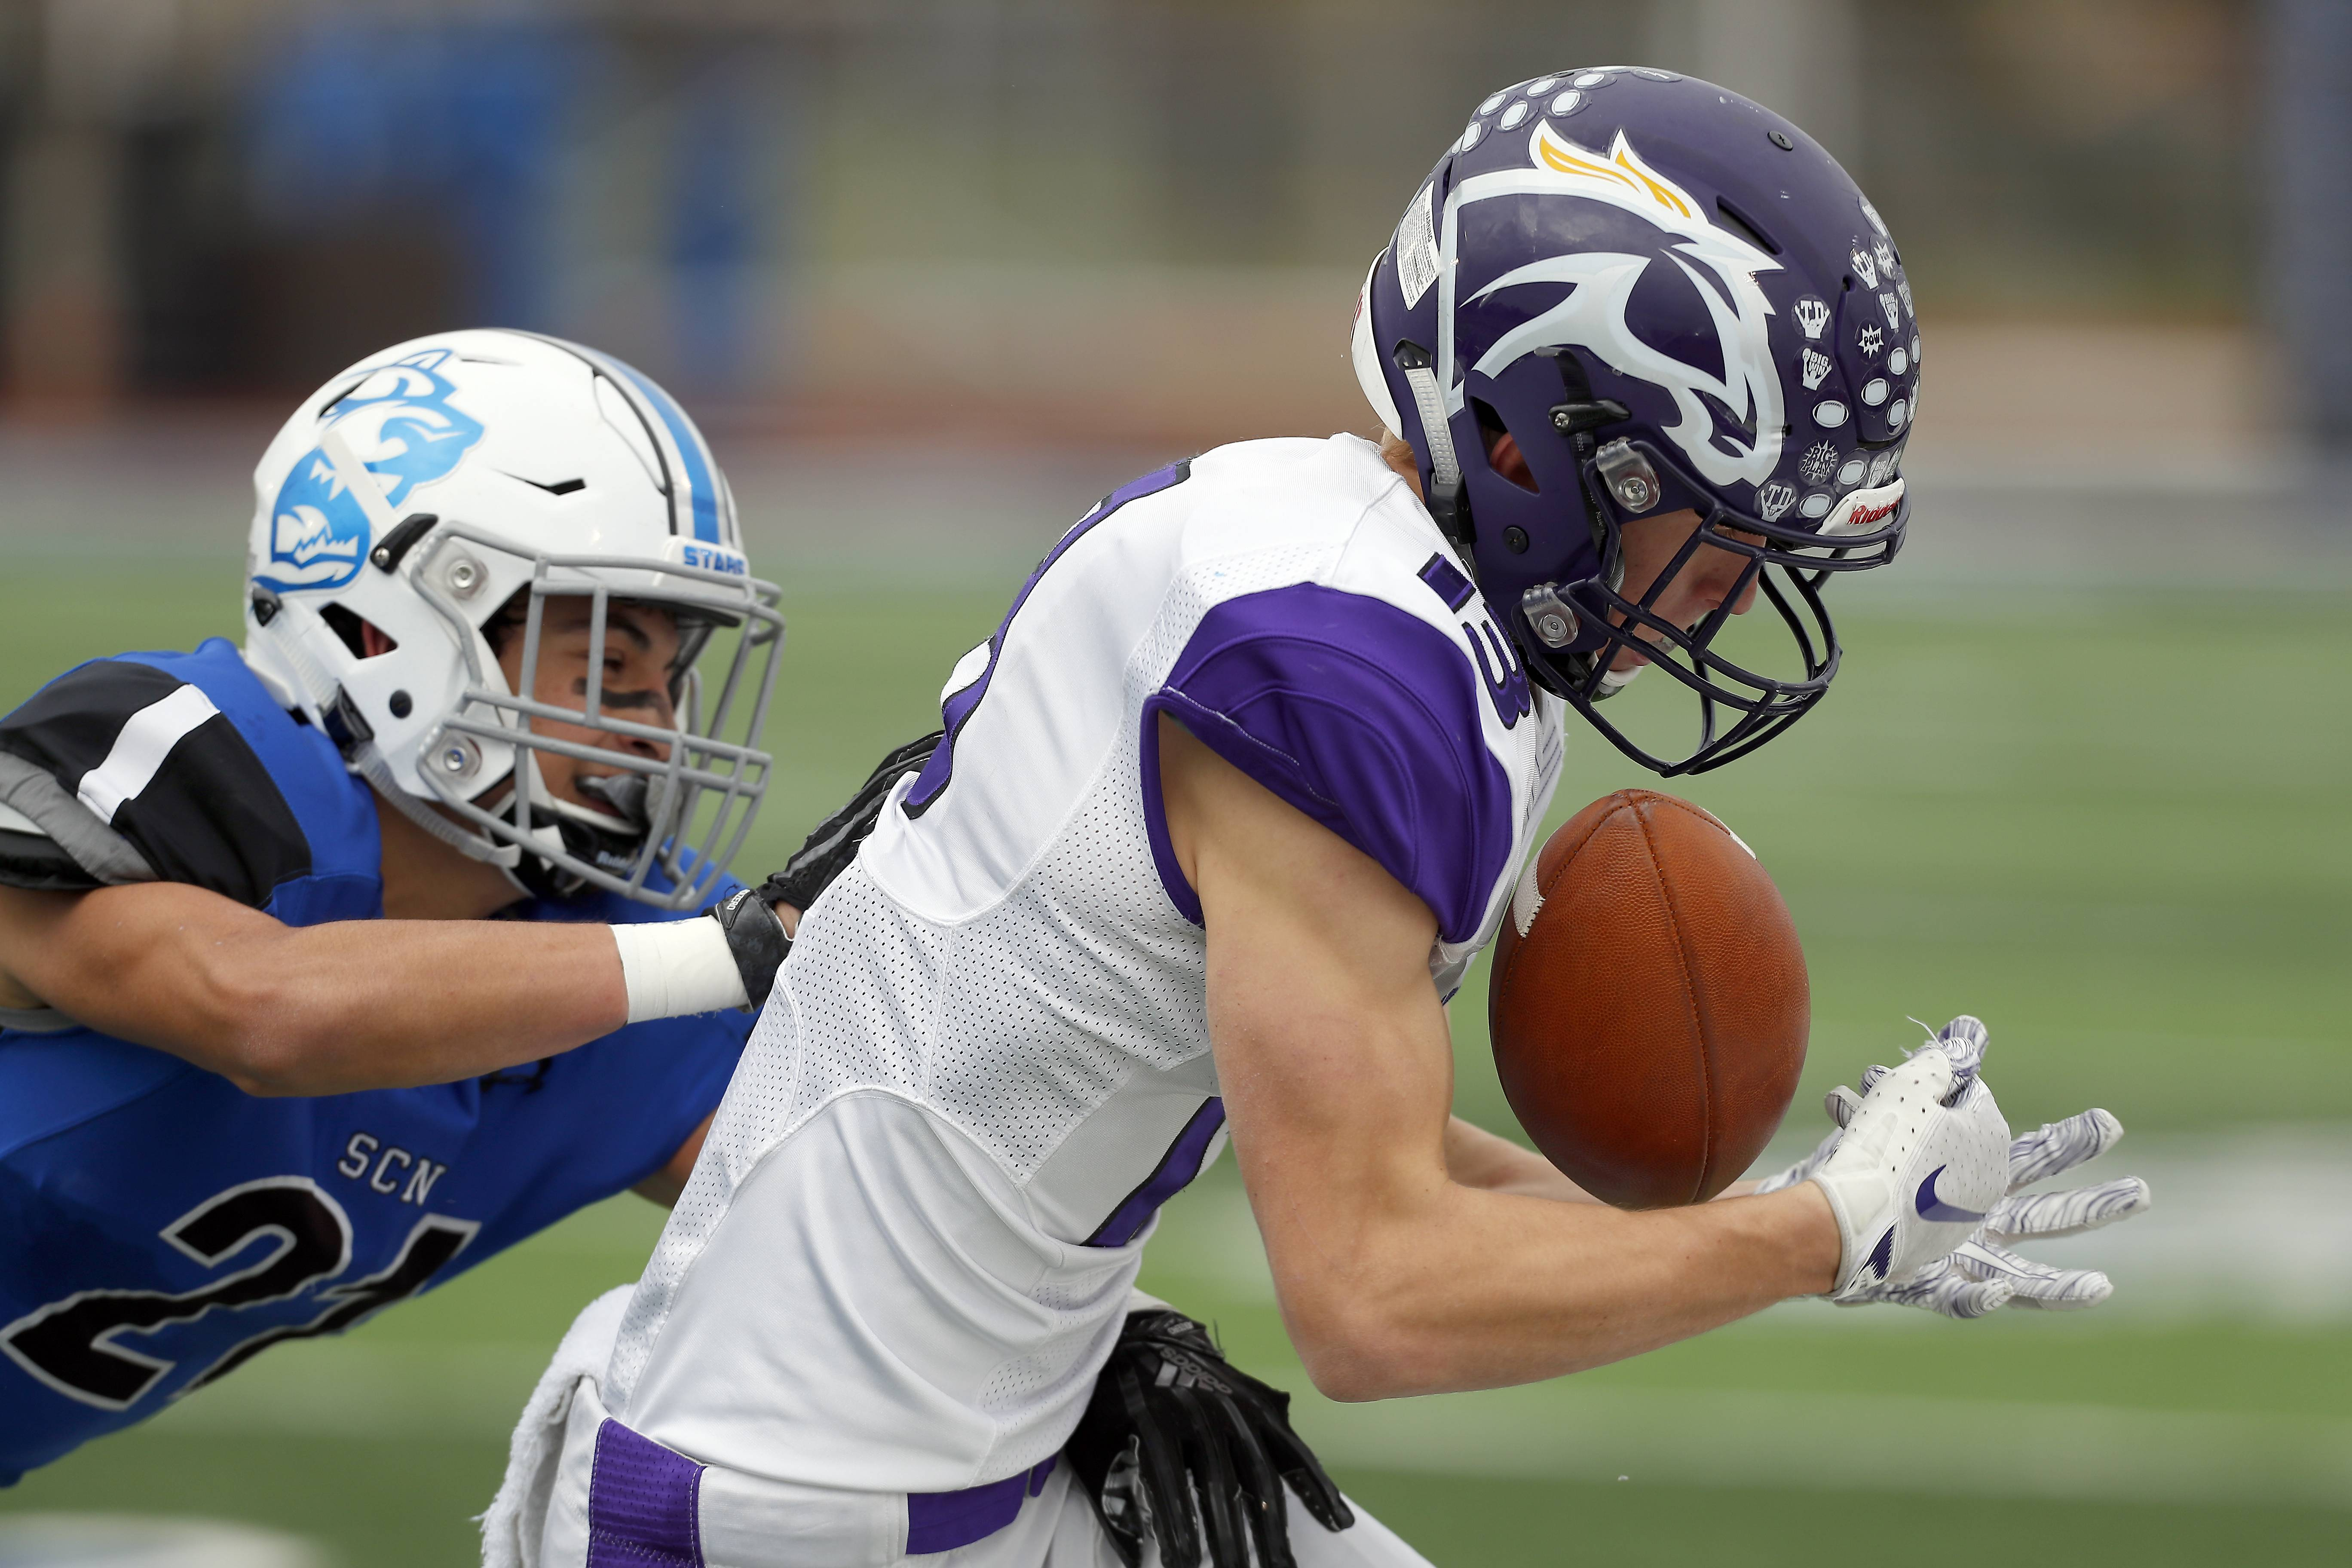 Rolling Meadows' Justin Kretz (13) holds onto a pass as St. Charles North's Ethan Romero (21) tries to stop the play Saturday during IHSA Class 7A playoff football in St. Charles.